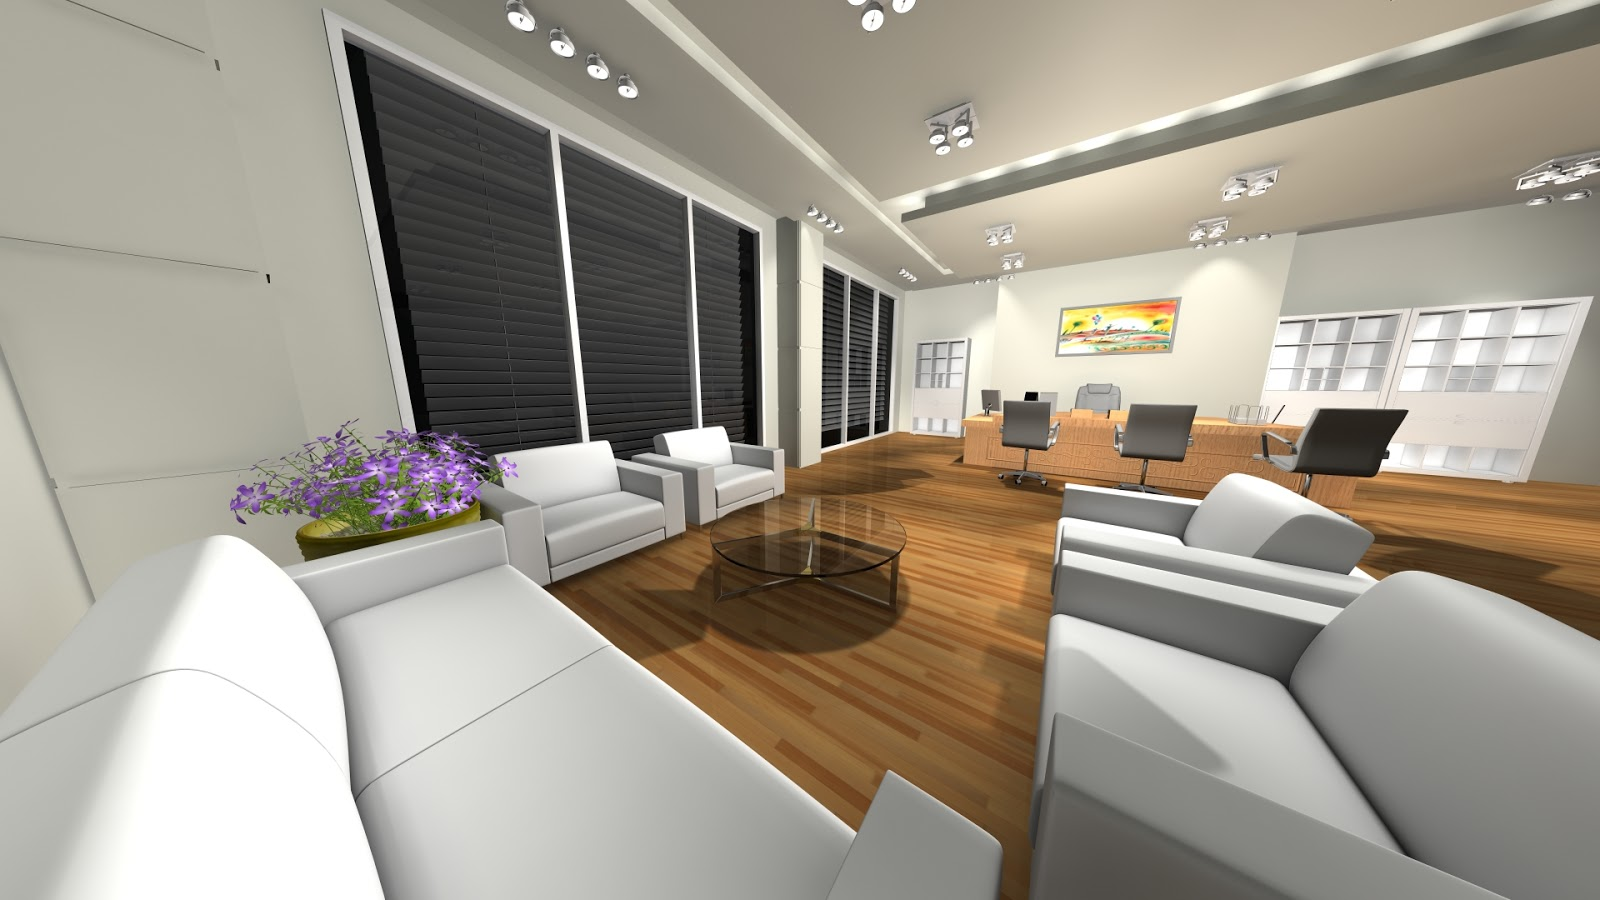 Sajid designer office room 3d interior design 3ds max Create a 3d room